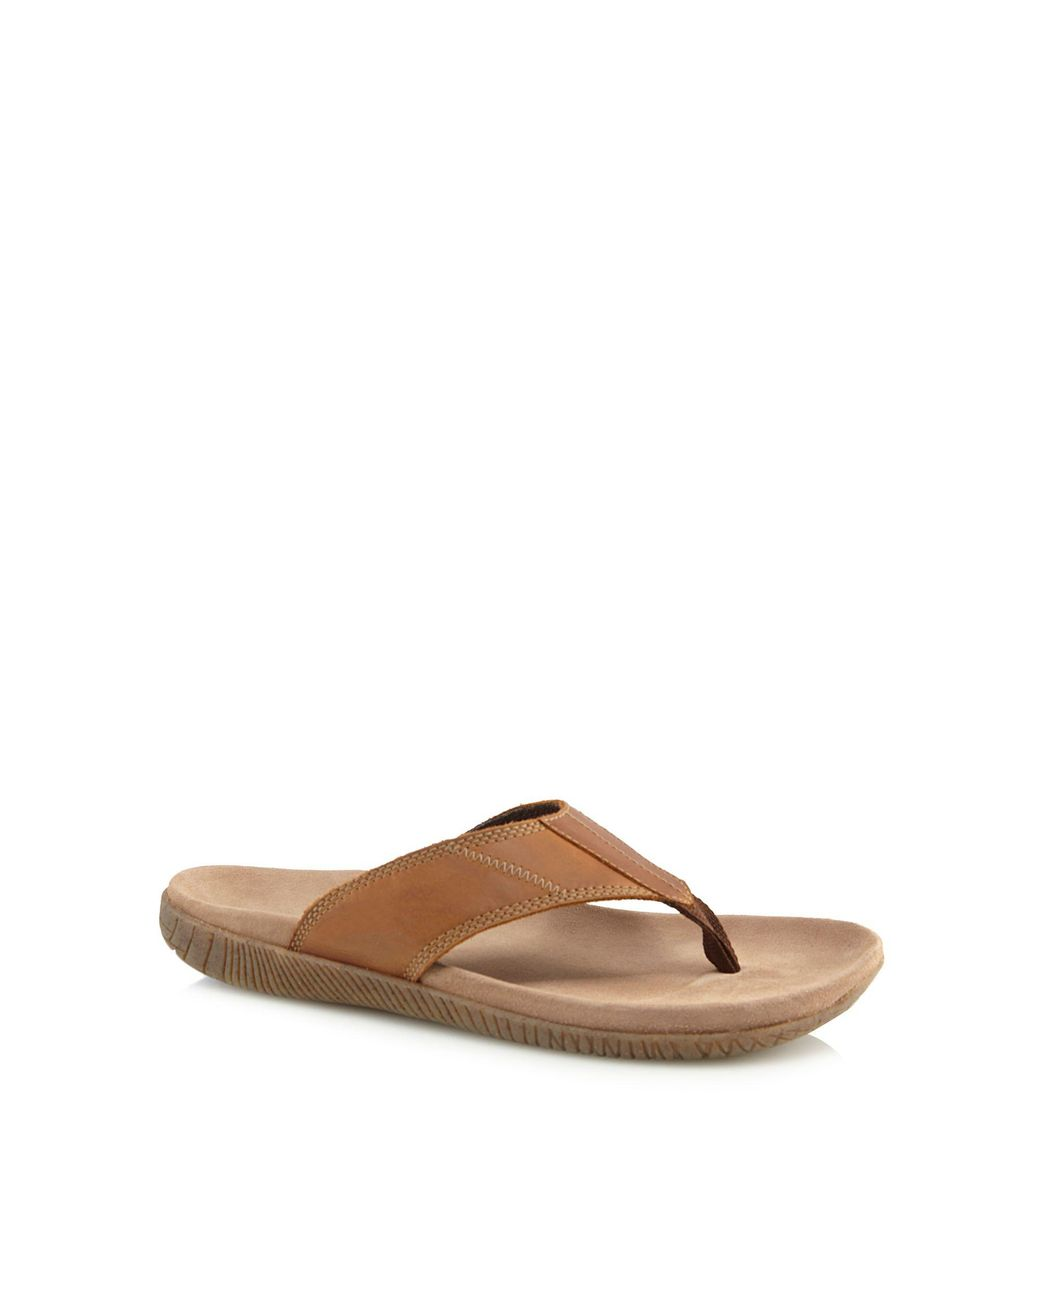 febdaddf672 Hush Puppies Brown Leather  mutt  Flip Flops in Brown for Men - Lyst